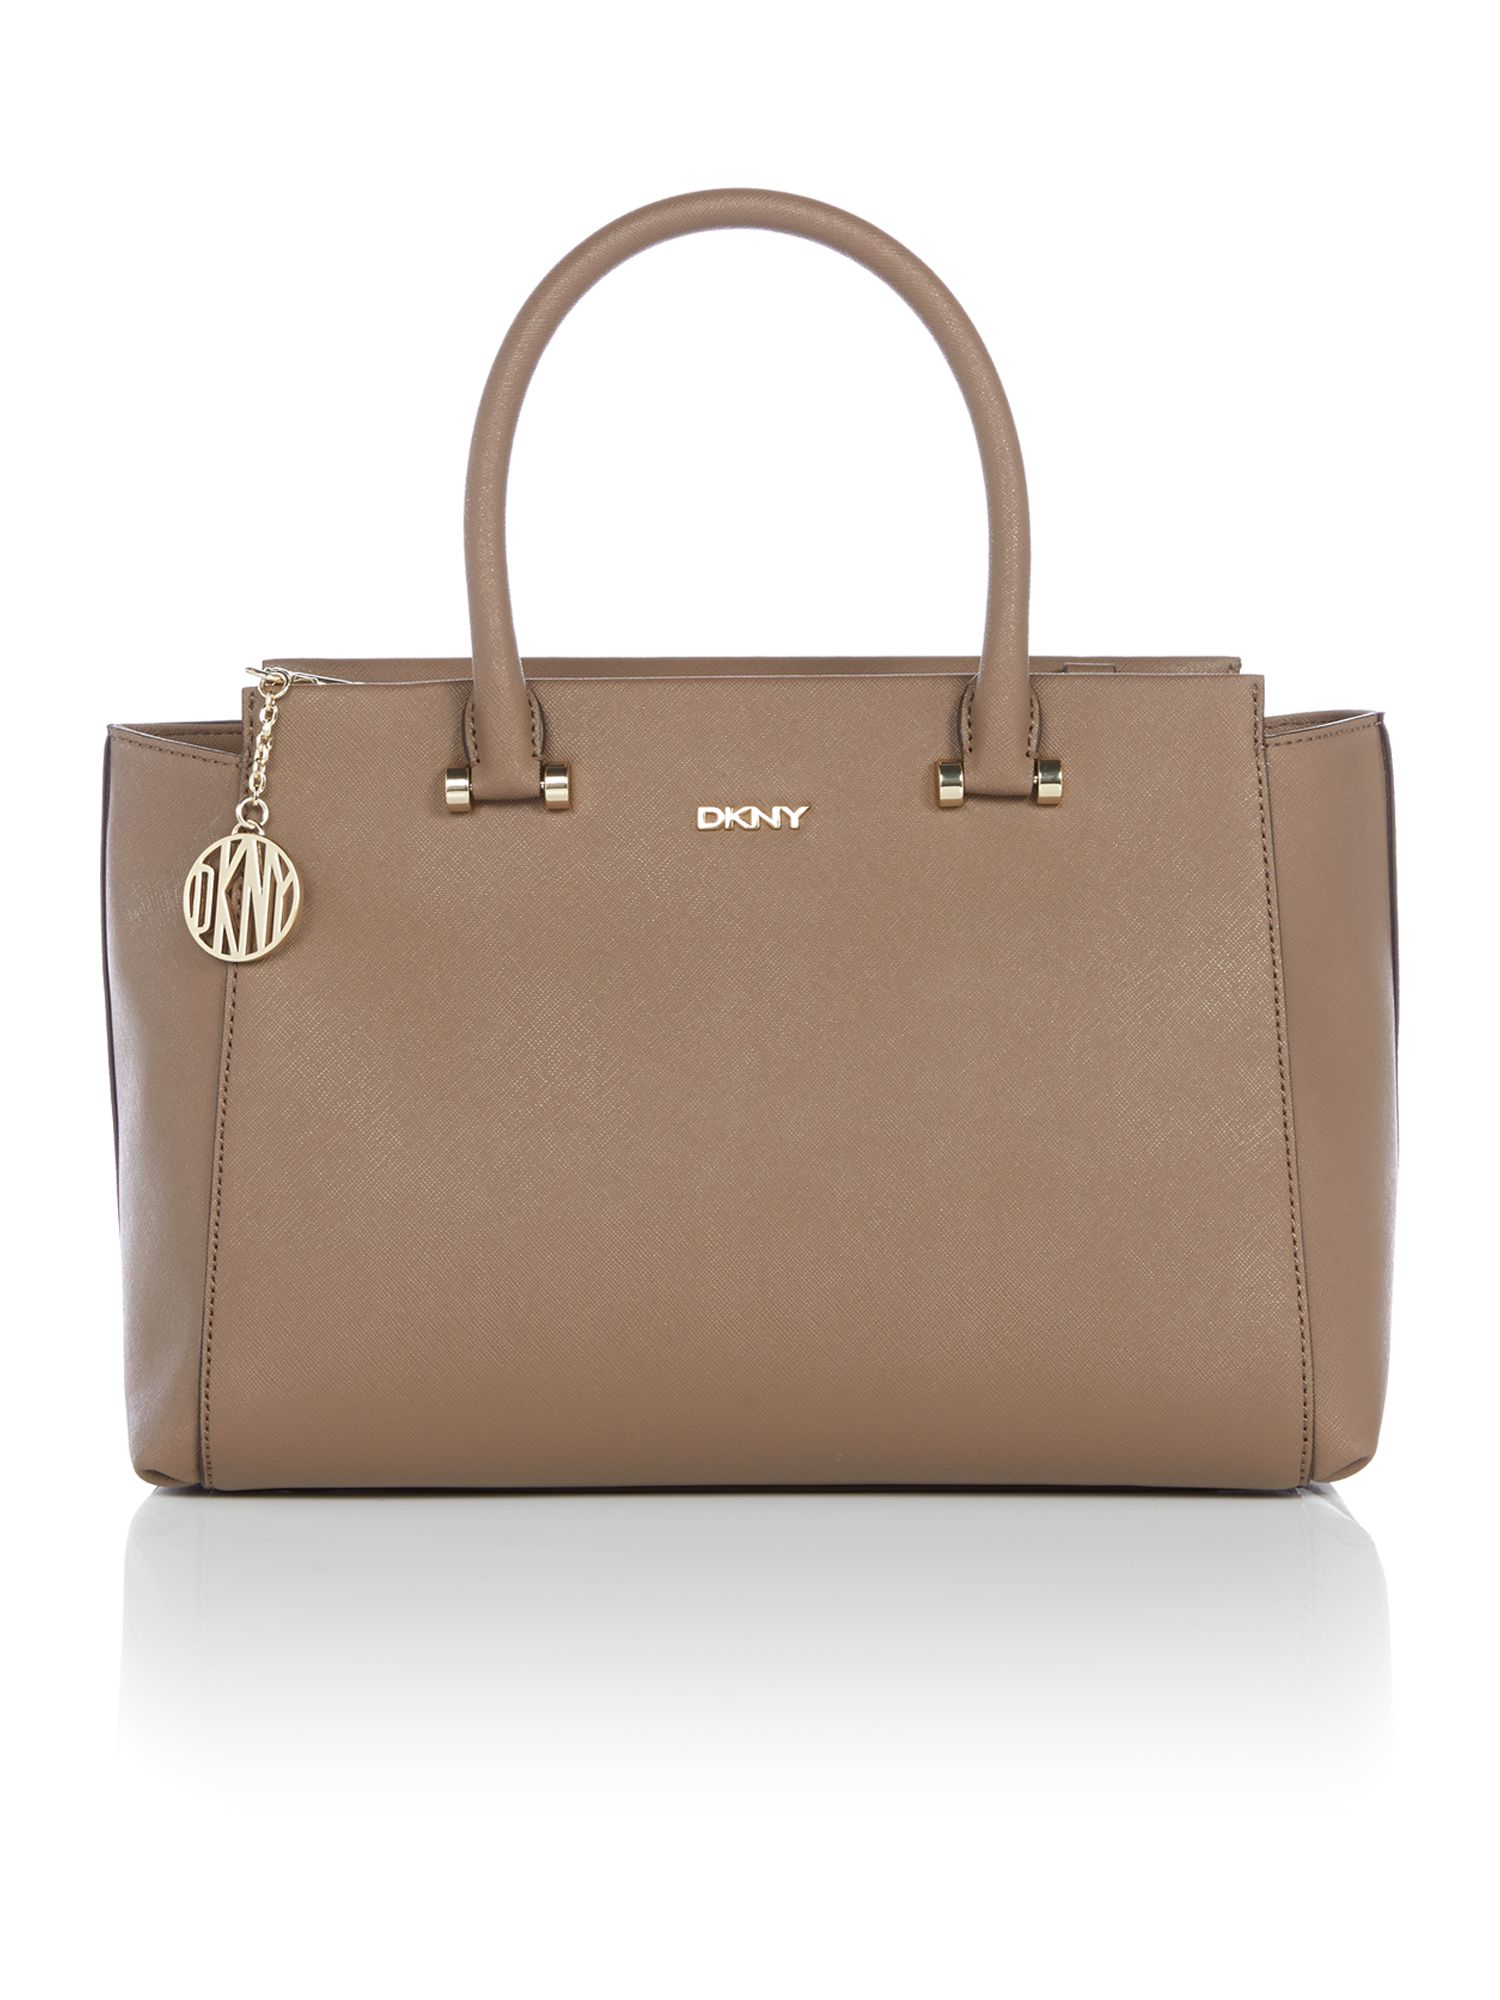 Dkny saffiano taupe large satchel bag in brown lyst Sdb chocolat taupe